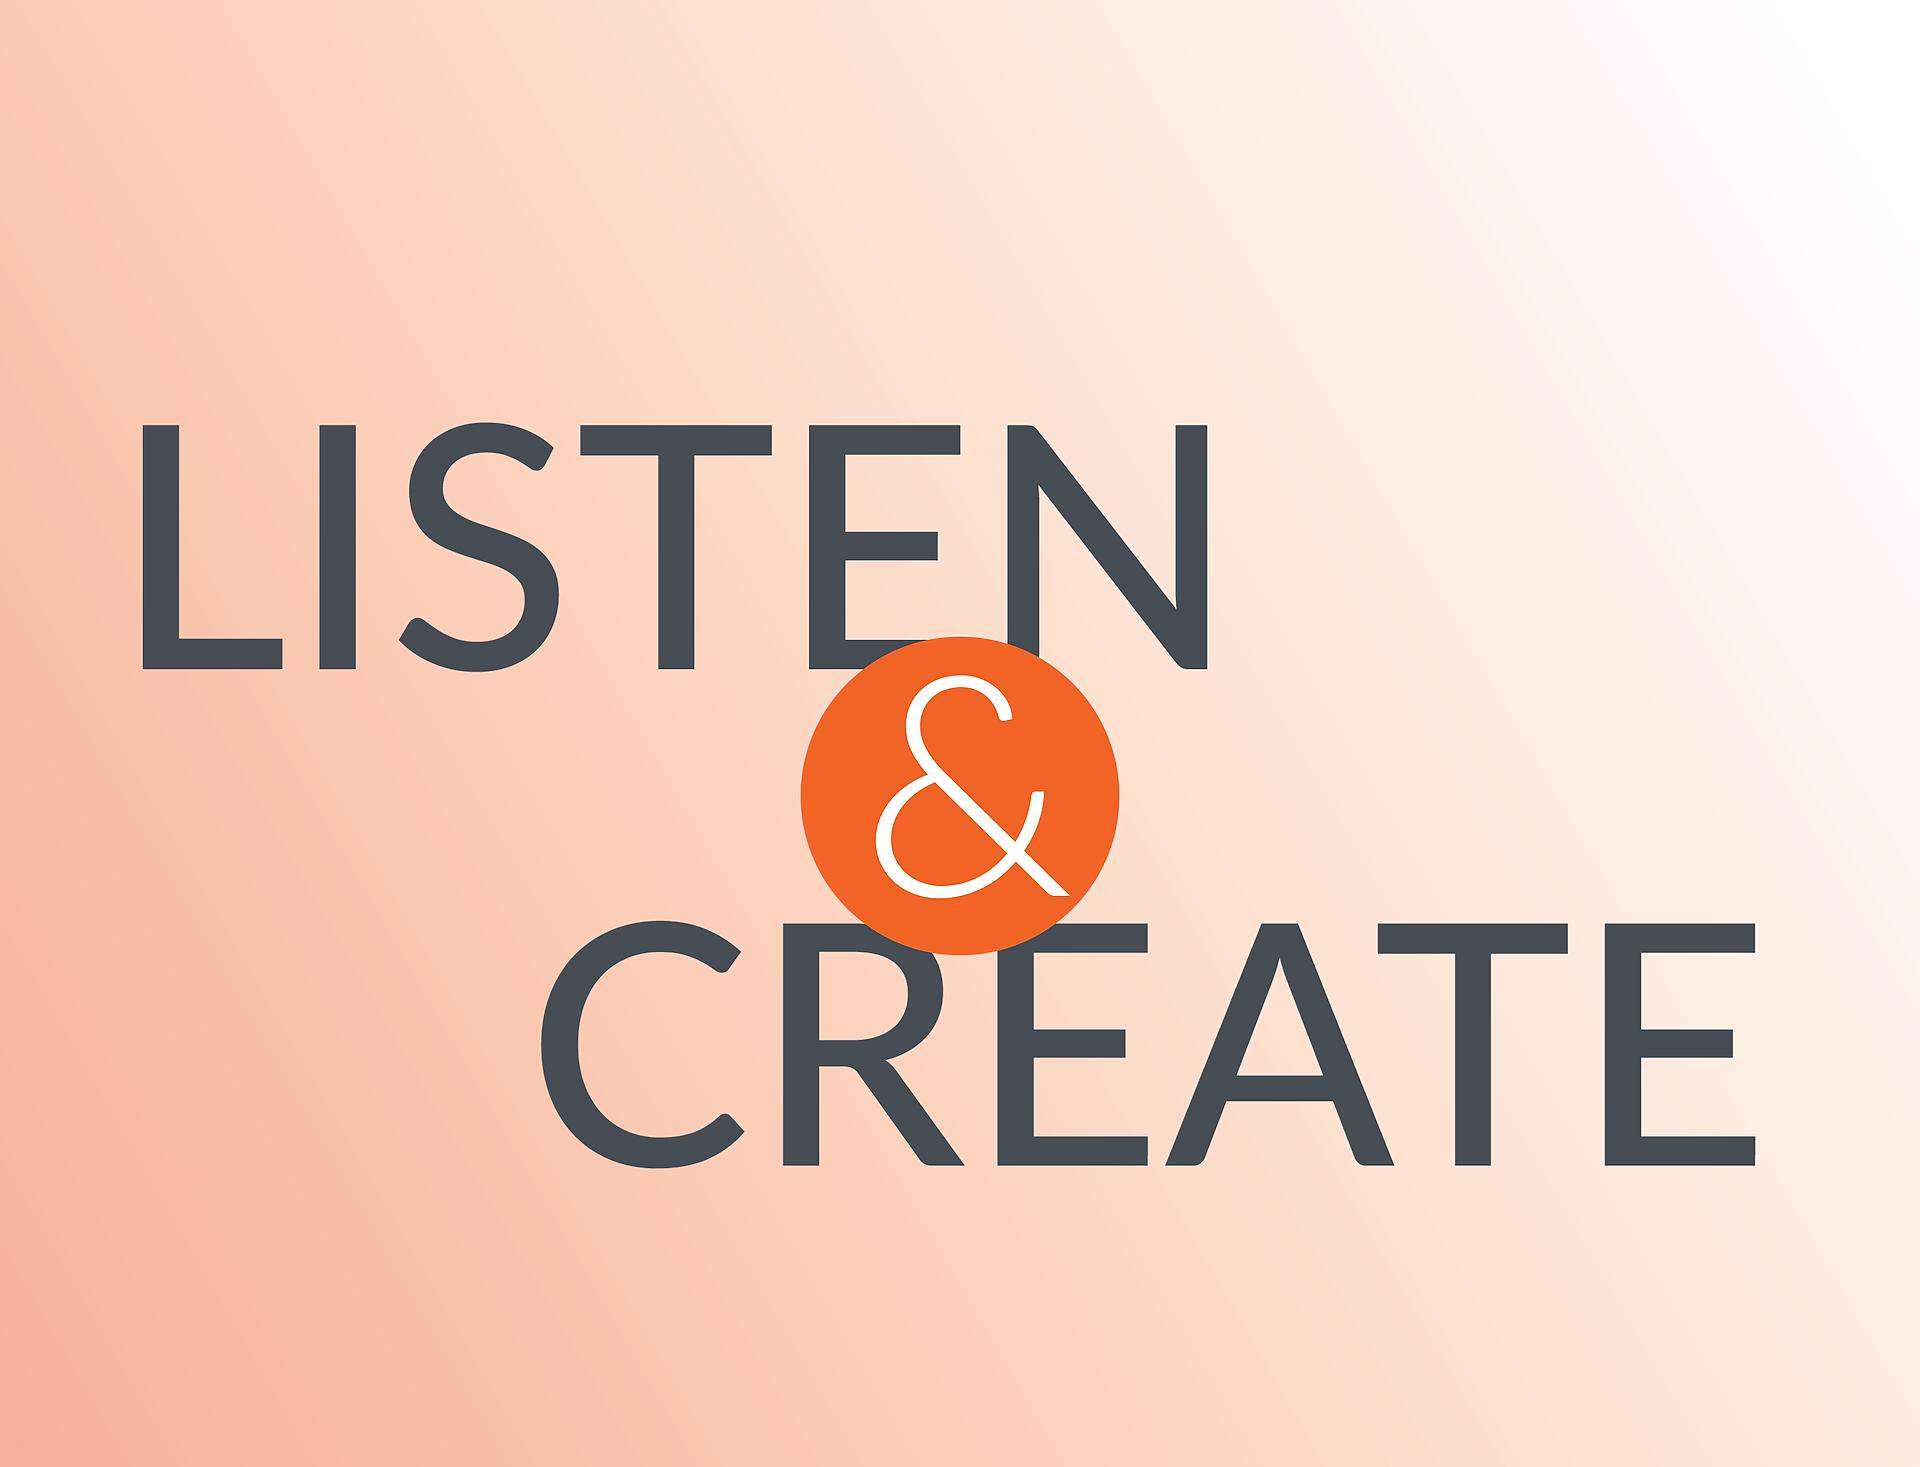 listen and create